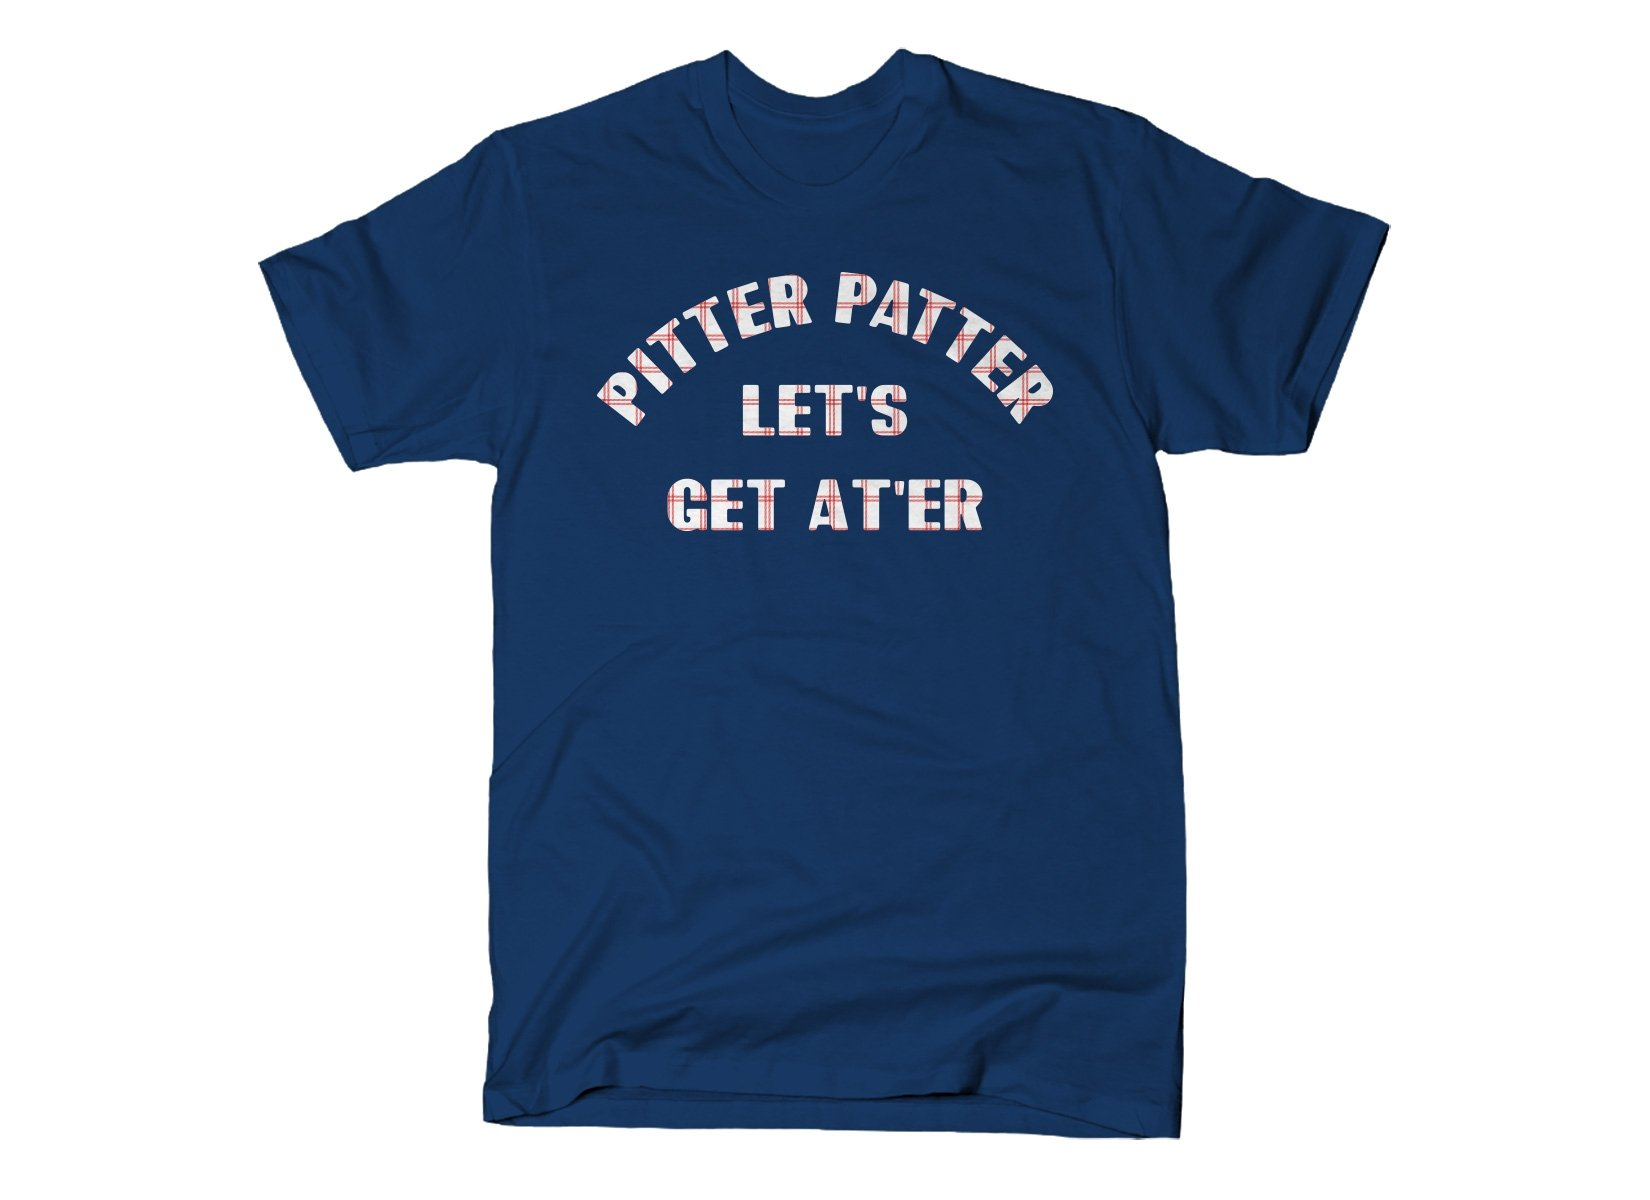 Pitter Patter Let's Get At'er on Mens T-Shirt